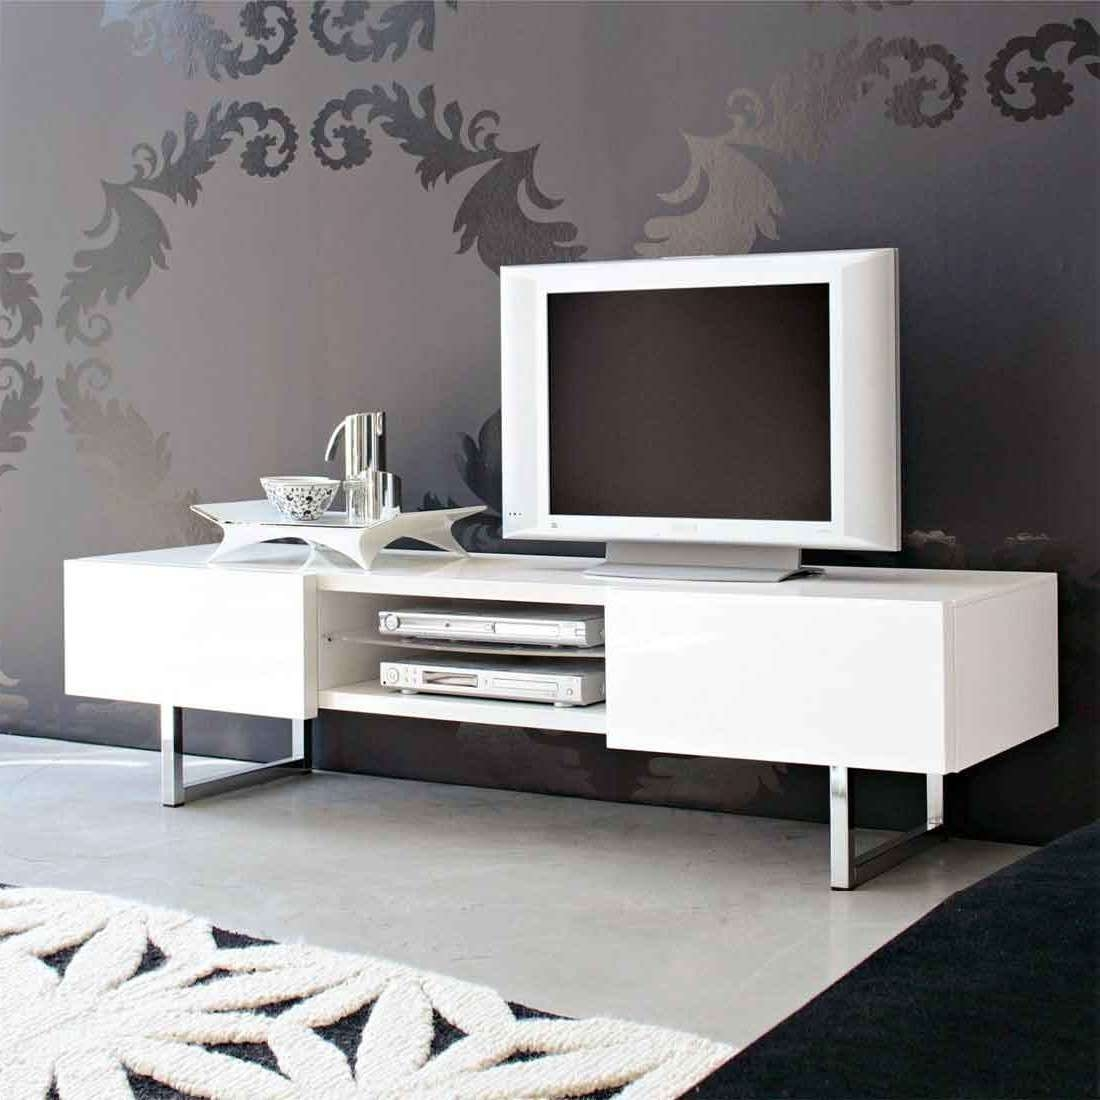 White Tv Stand Ideas Home Design Dac2a9cor Pinterest Furnitures With Regard To Large White Tv Stands (View 7 of 15)